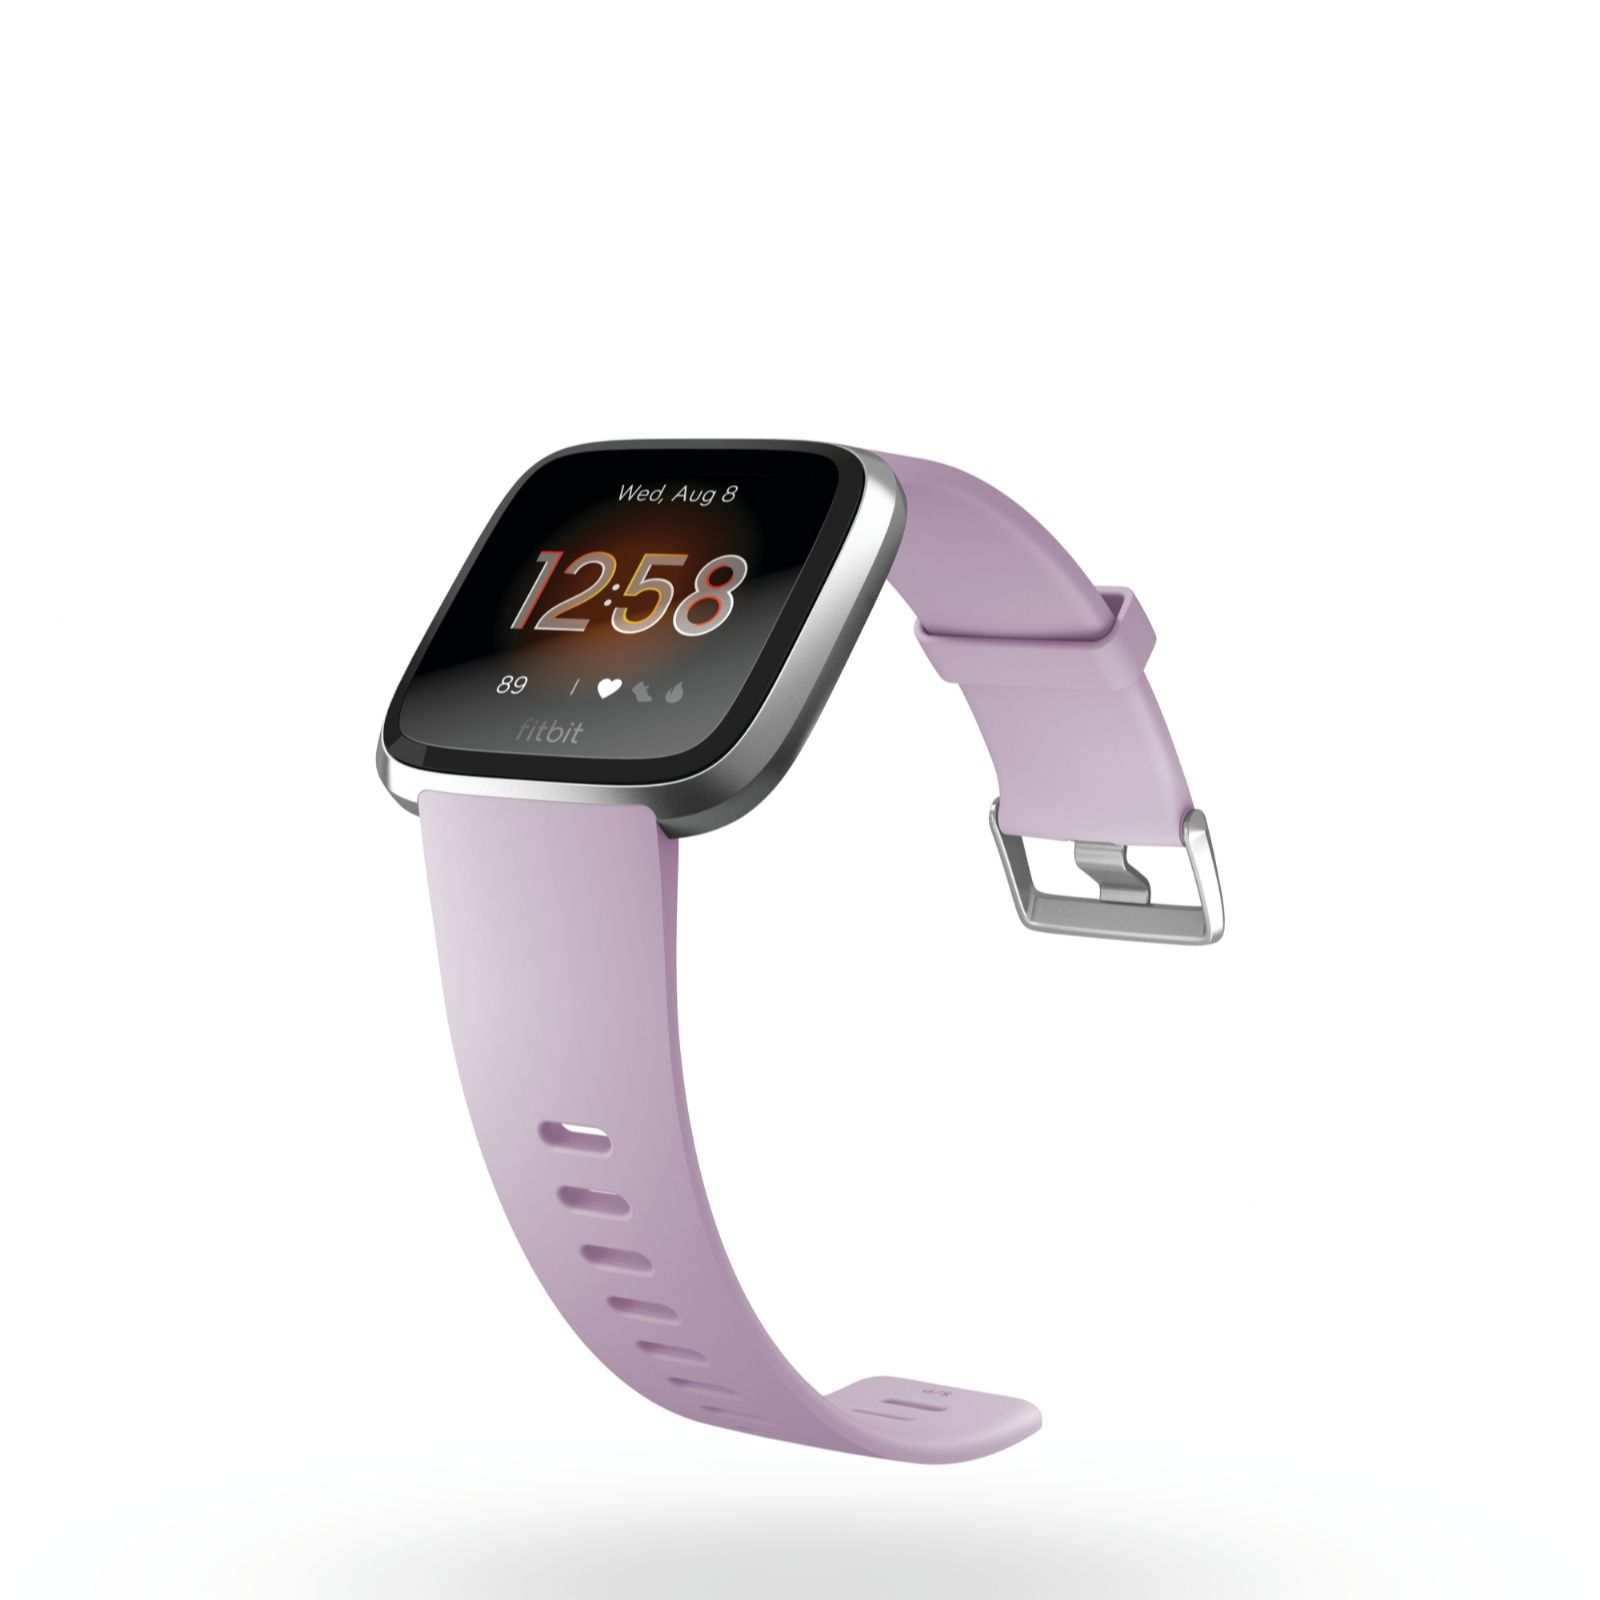 Fitbit Versa Lite Smartwatch with Heart Rate Monitor - QVC UK